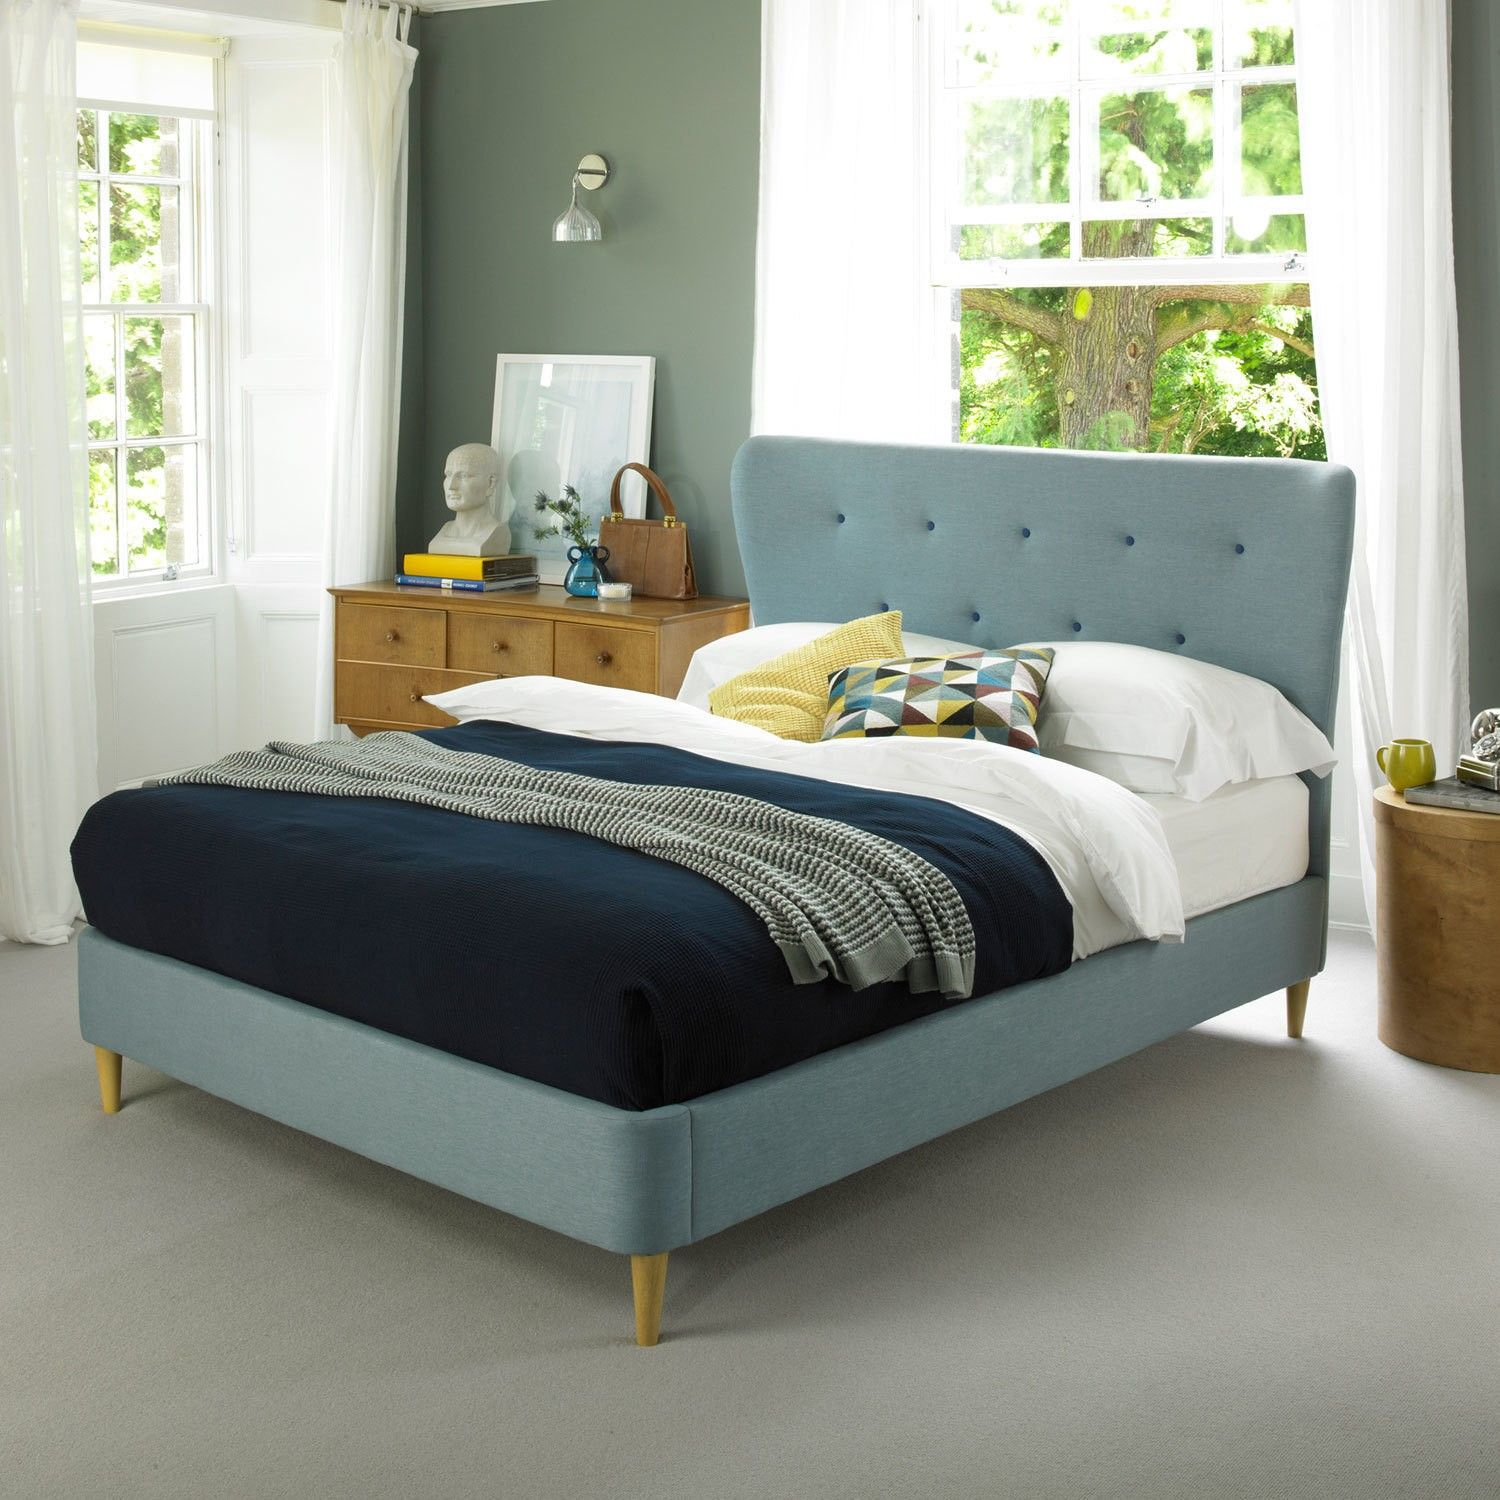 Buy Esme Fabric Bed Frame At Carpetright We Make Choosing